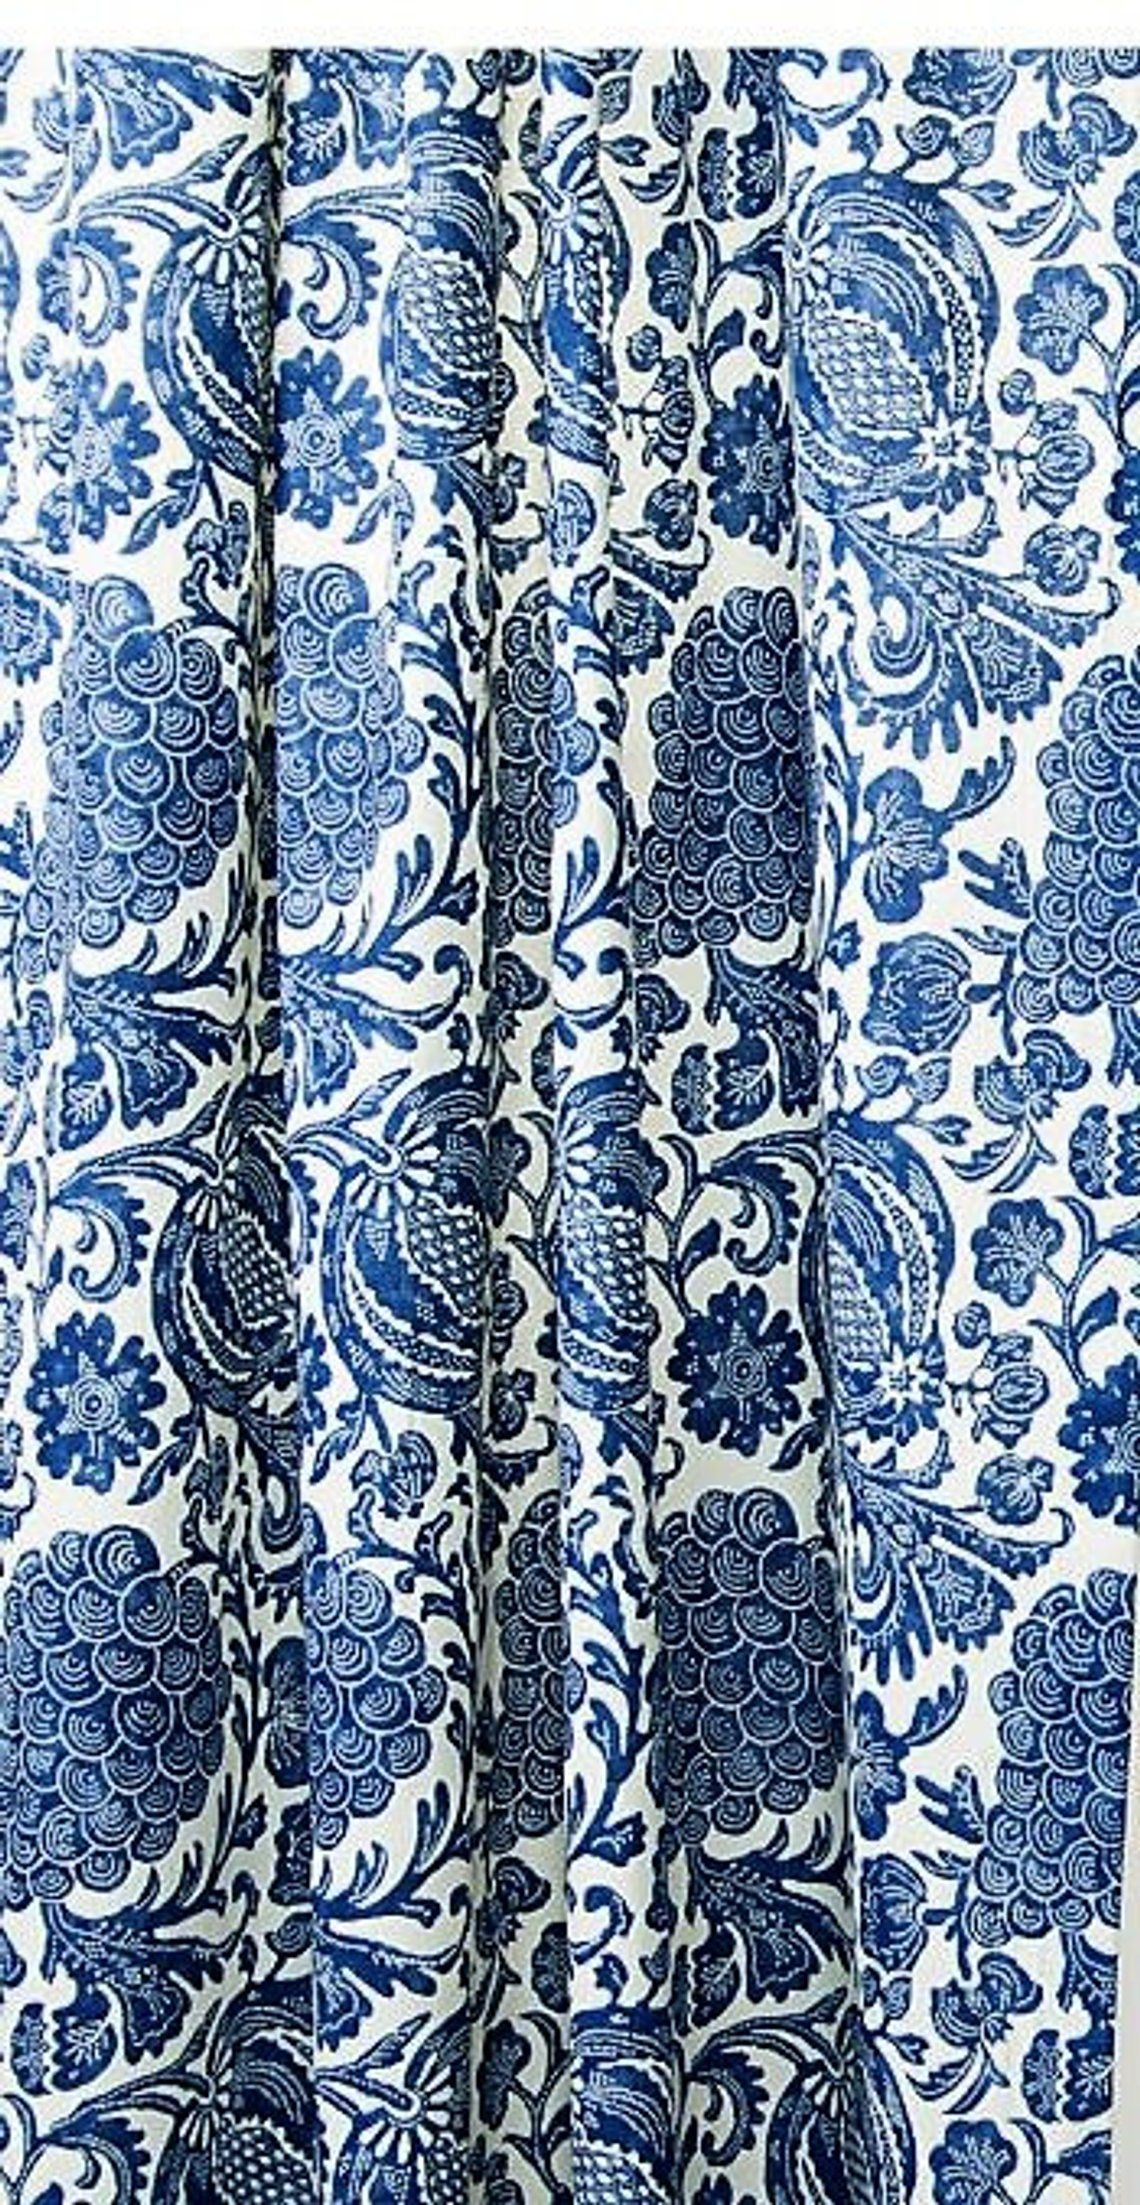 Indigo Blue And Off White Lined Curtains Cobalt Blue Lined Etsy White Lined Curtains Blue And White Curtains Living Room Drapes